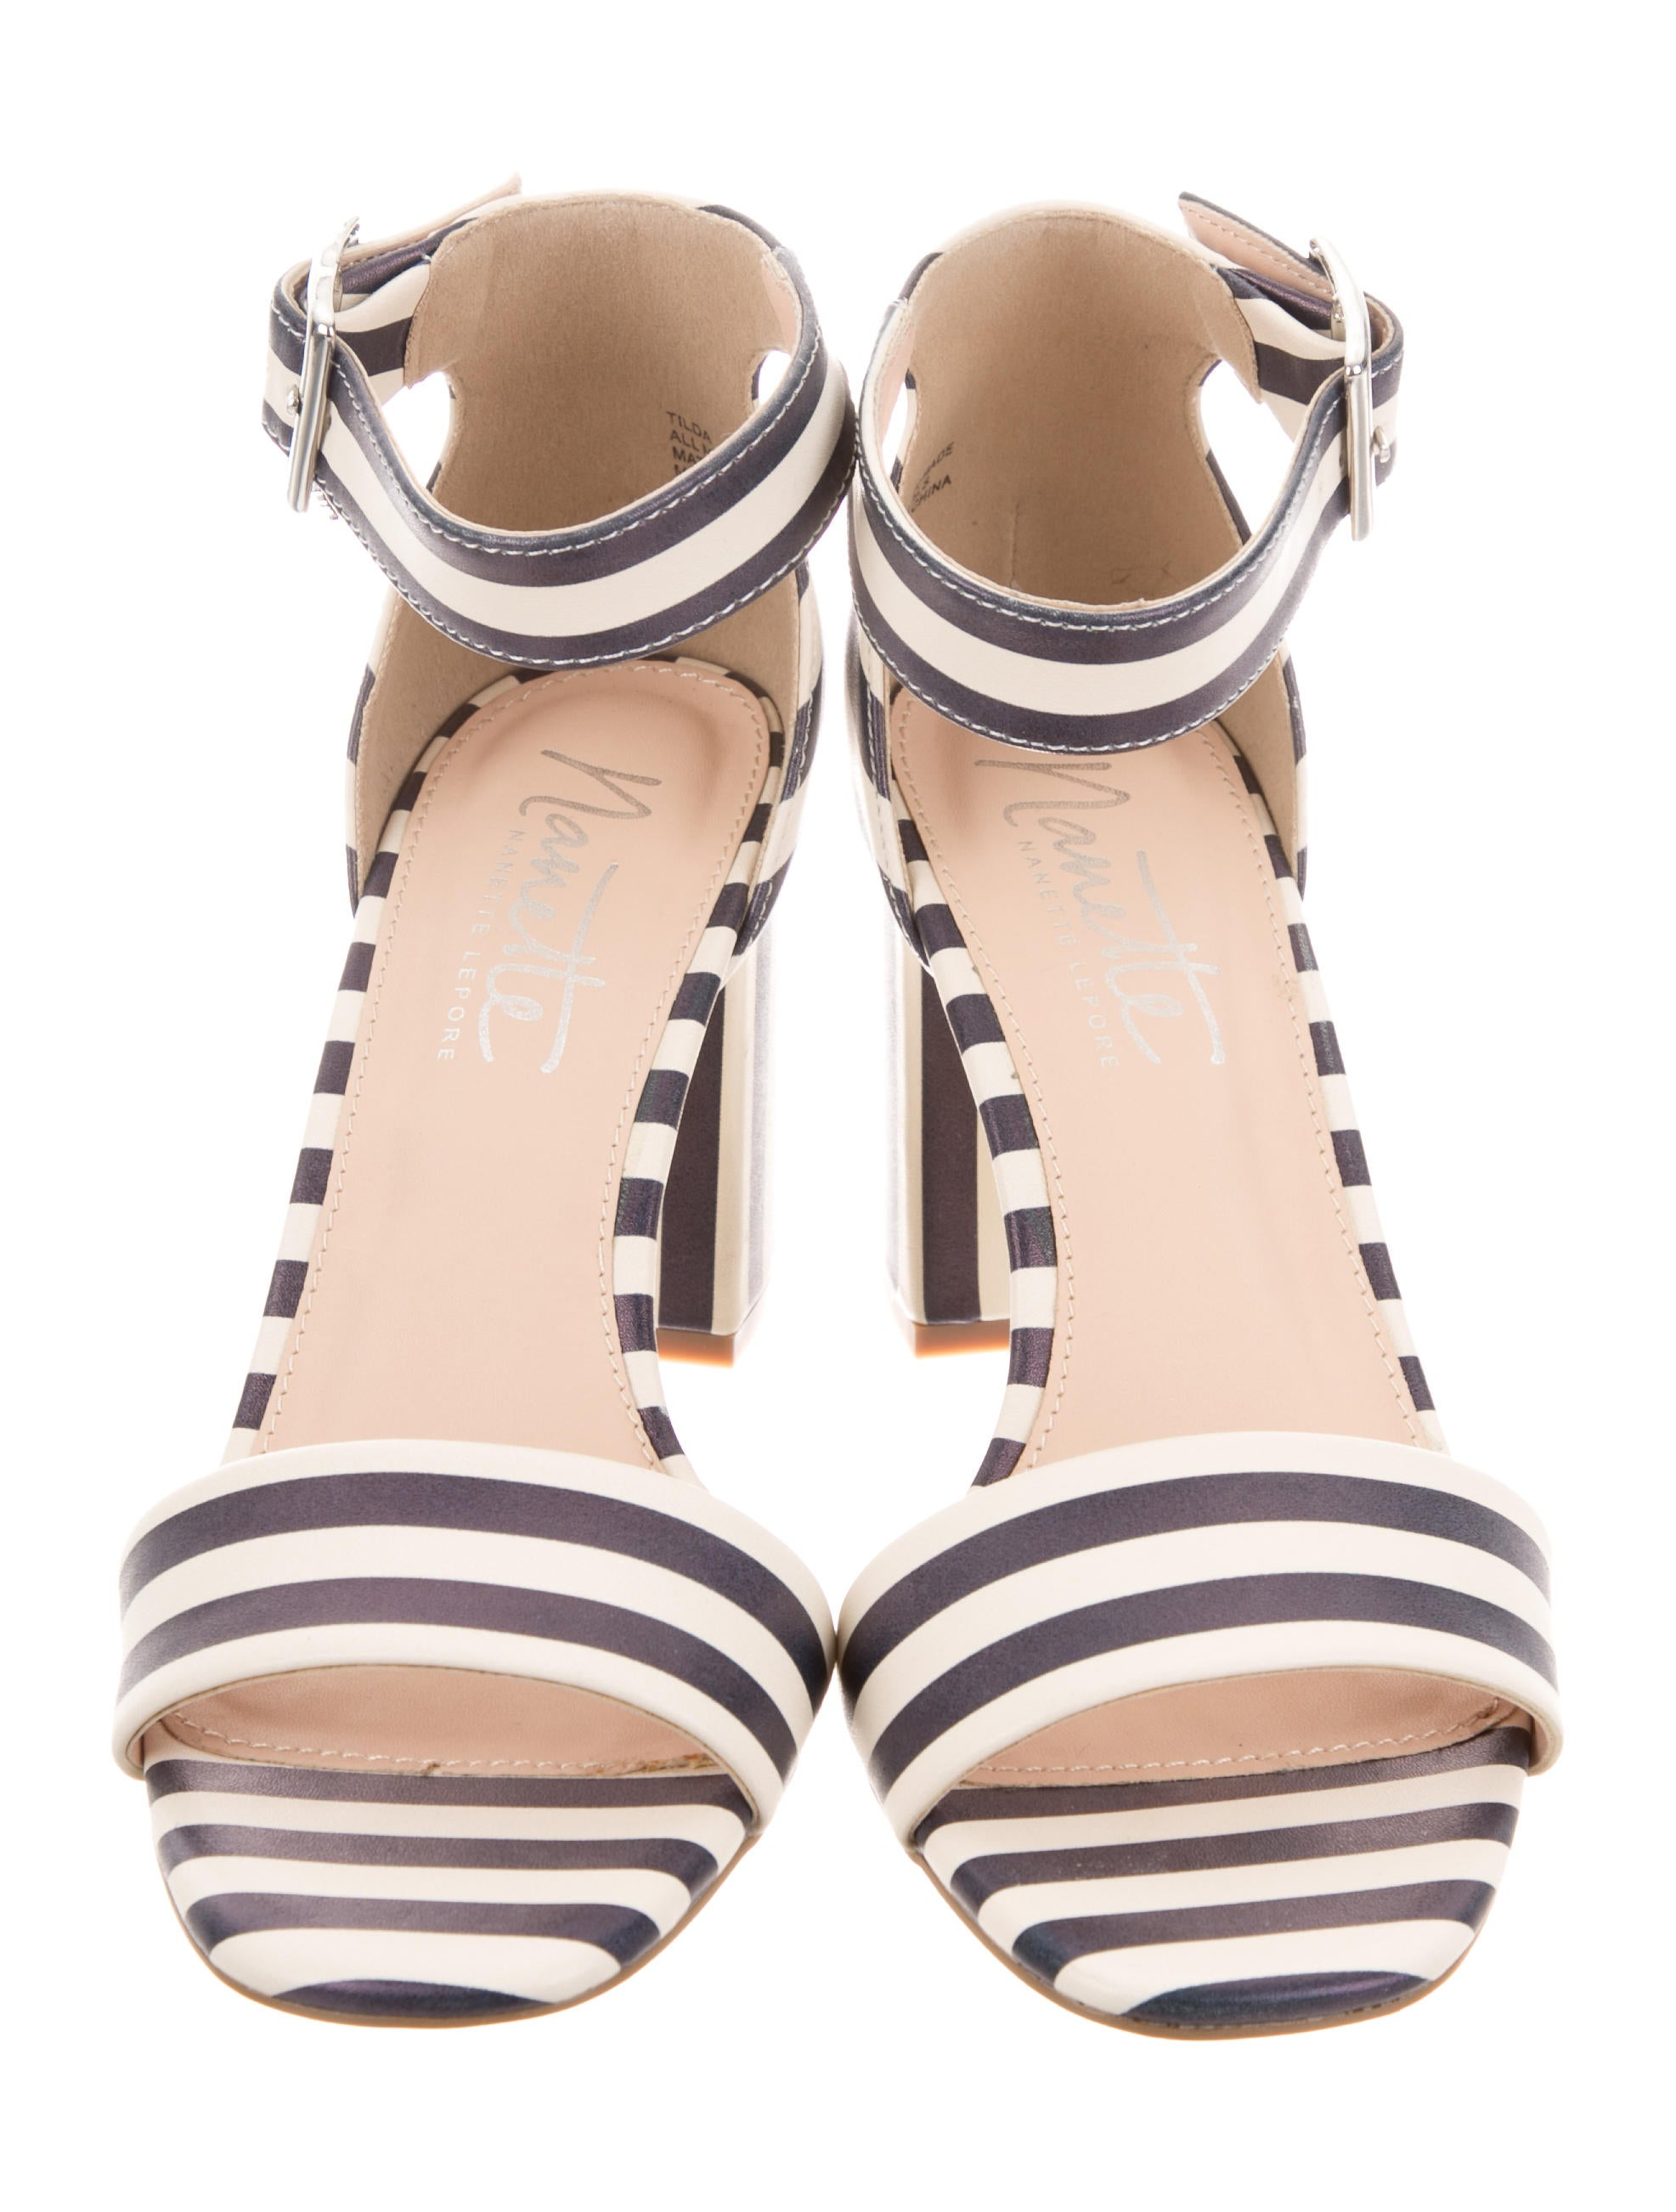 free shipping shop offer in China Nanette Lepore Tilda Striped Sandals w/ Tags low shipping fee sale online brand new unisex for sale ac30Vjb9b